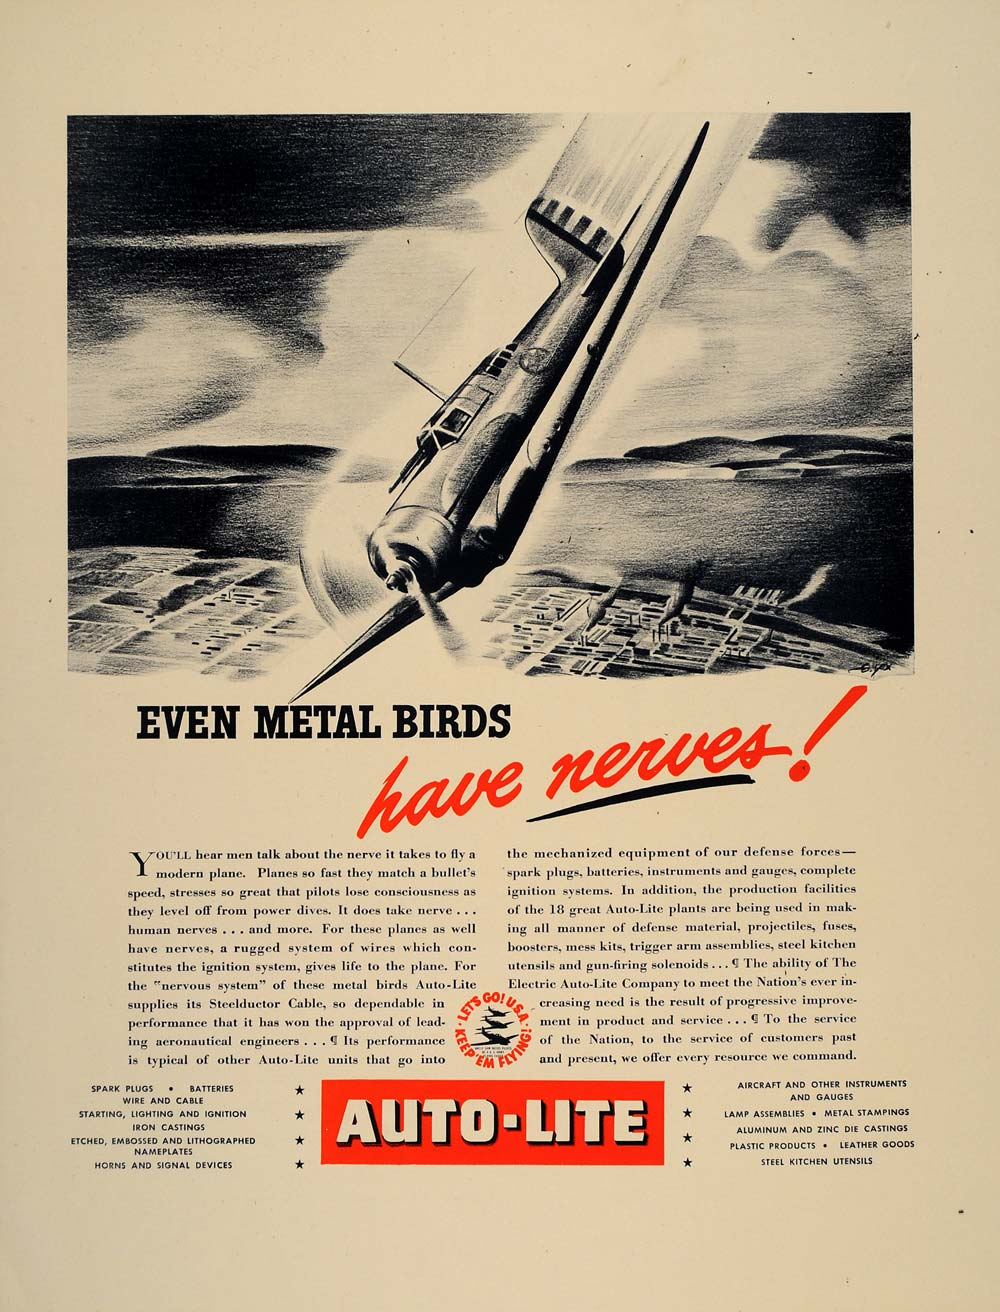 1941 Ad Electric Auto-Lite WWII Defense Airplane Parts - ORIGINAL FT8